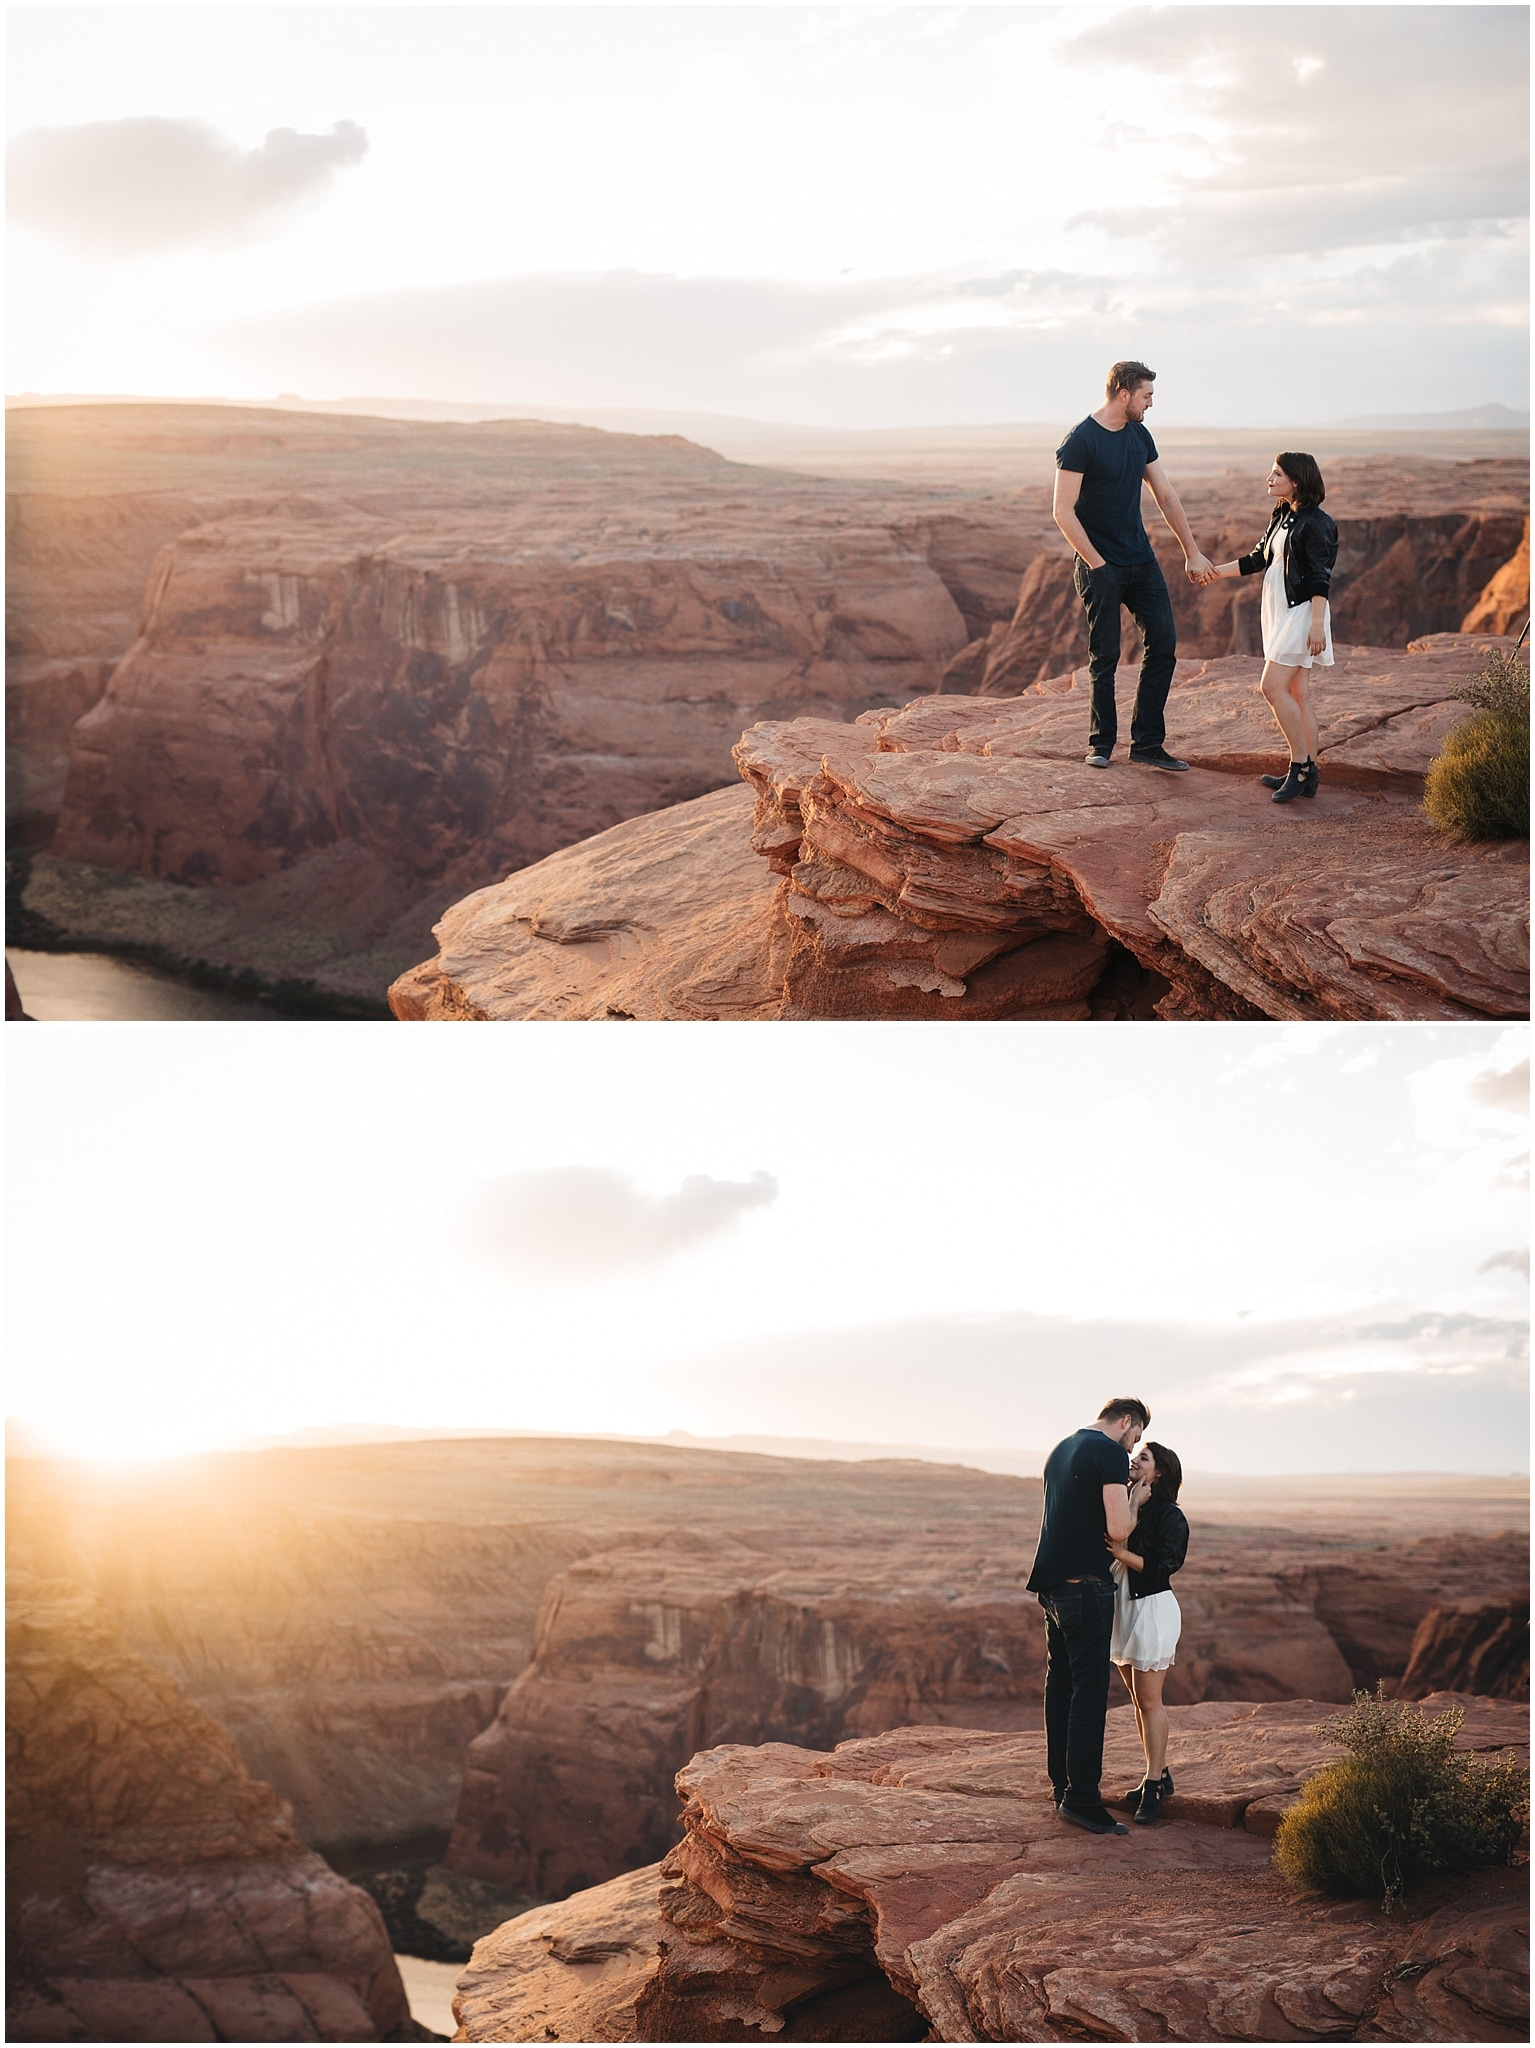 Horseshoe Bend Engagement Photos, Adventure Engagement Photos, Arizona Engagement Photographer, Arizona couples photos, Arizona wedding photographer, Best photographers in Arizona, Best Arizona engagement photographers, Best Arizona Wedding photographers, Fun Engagement photo ideas, desert Engagement photos, adventurous Engagement session, Save the date photo ideas, Horseshoe Bend Arizona, Page Arizona, Page Arizona Elopement Photographer, Page Arizona Engagement Photographer, adventure elopement photographer